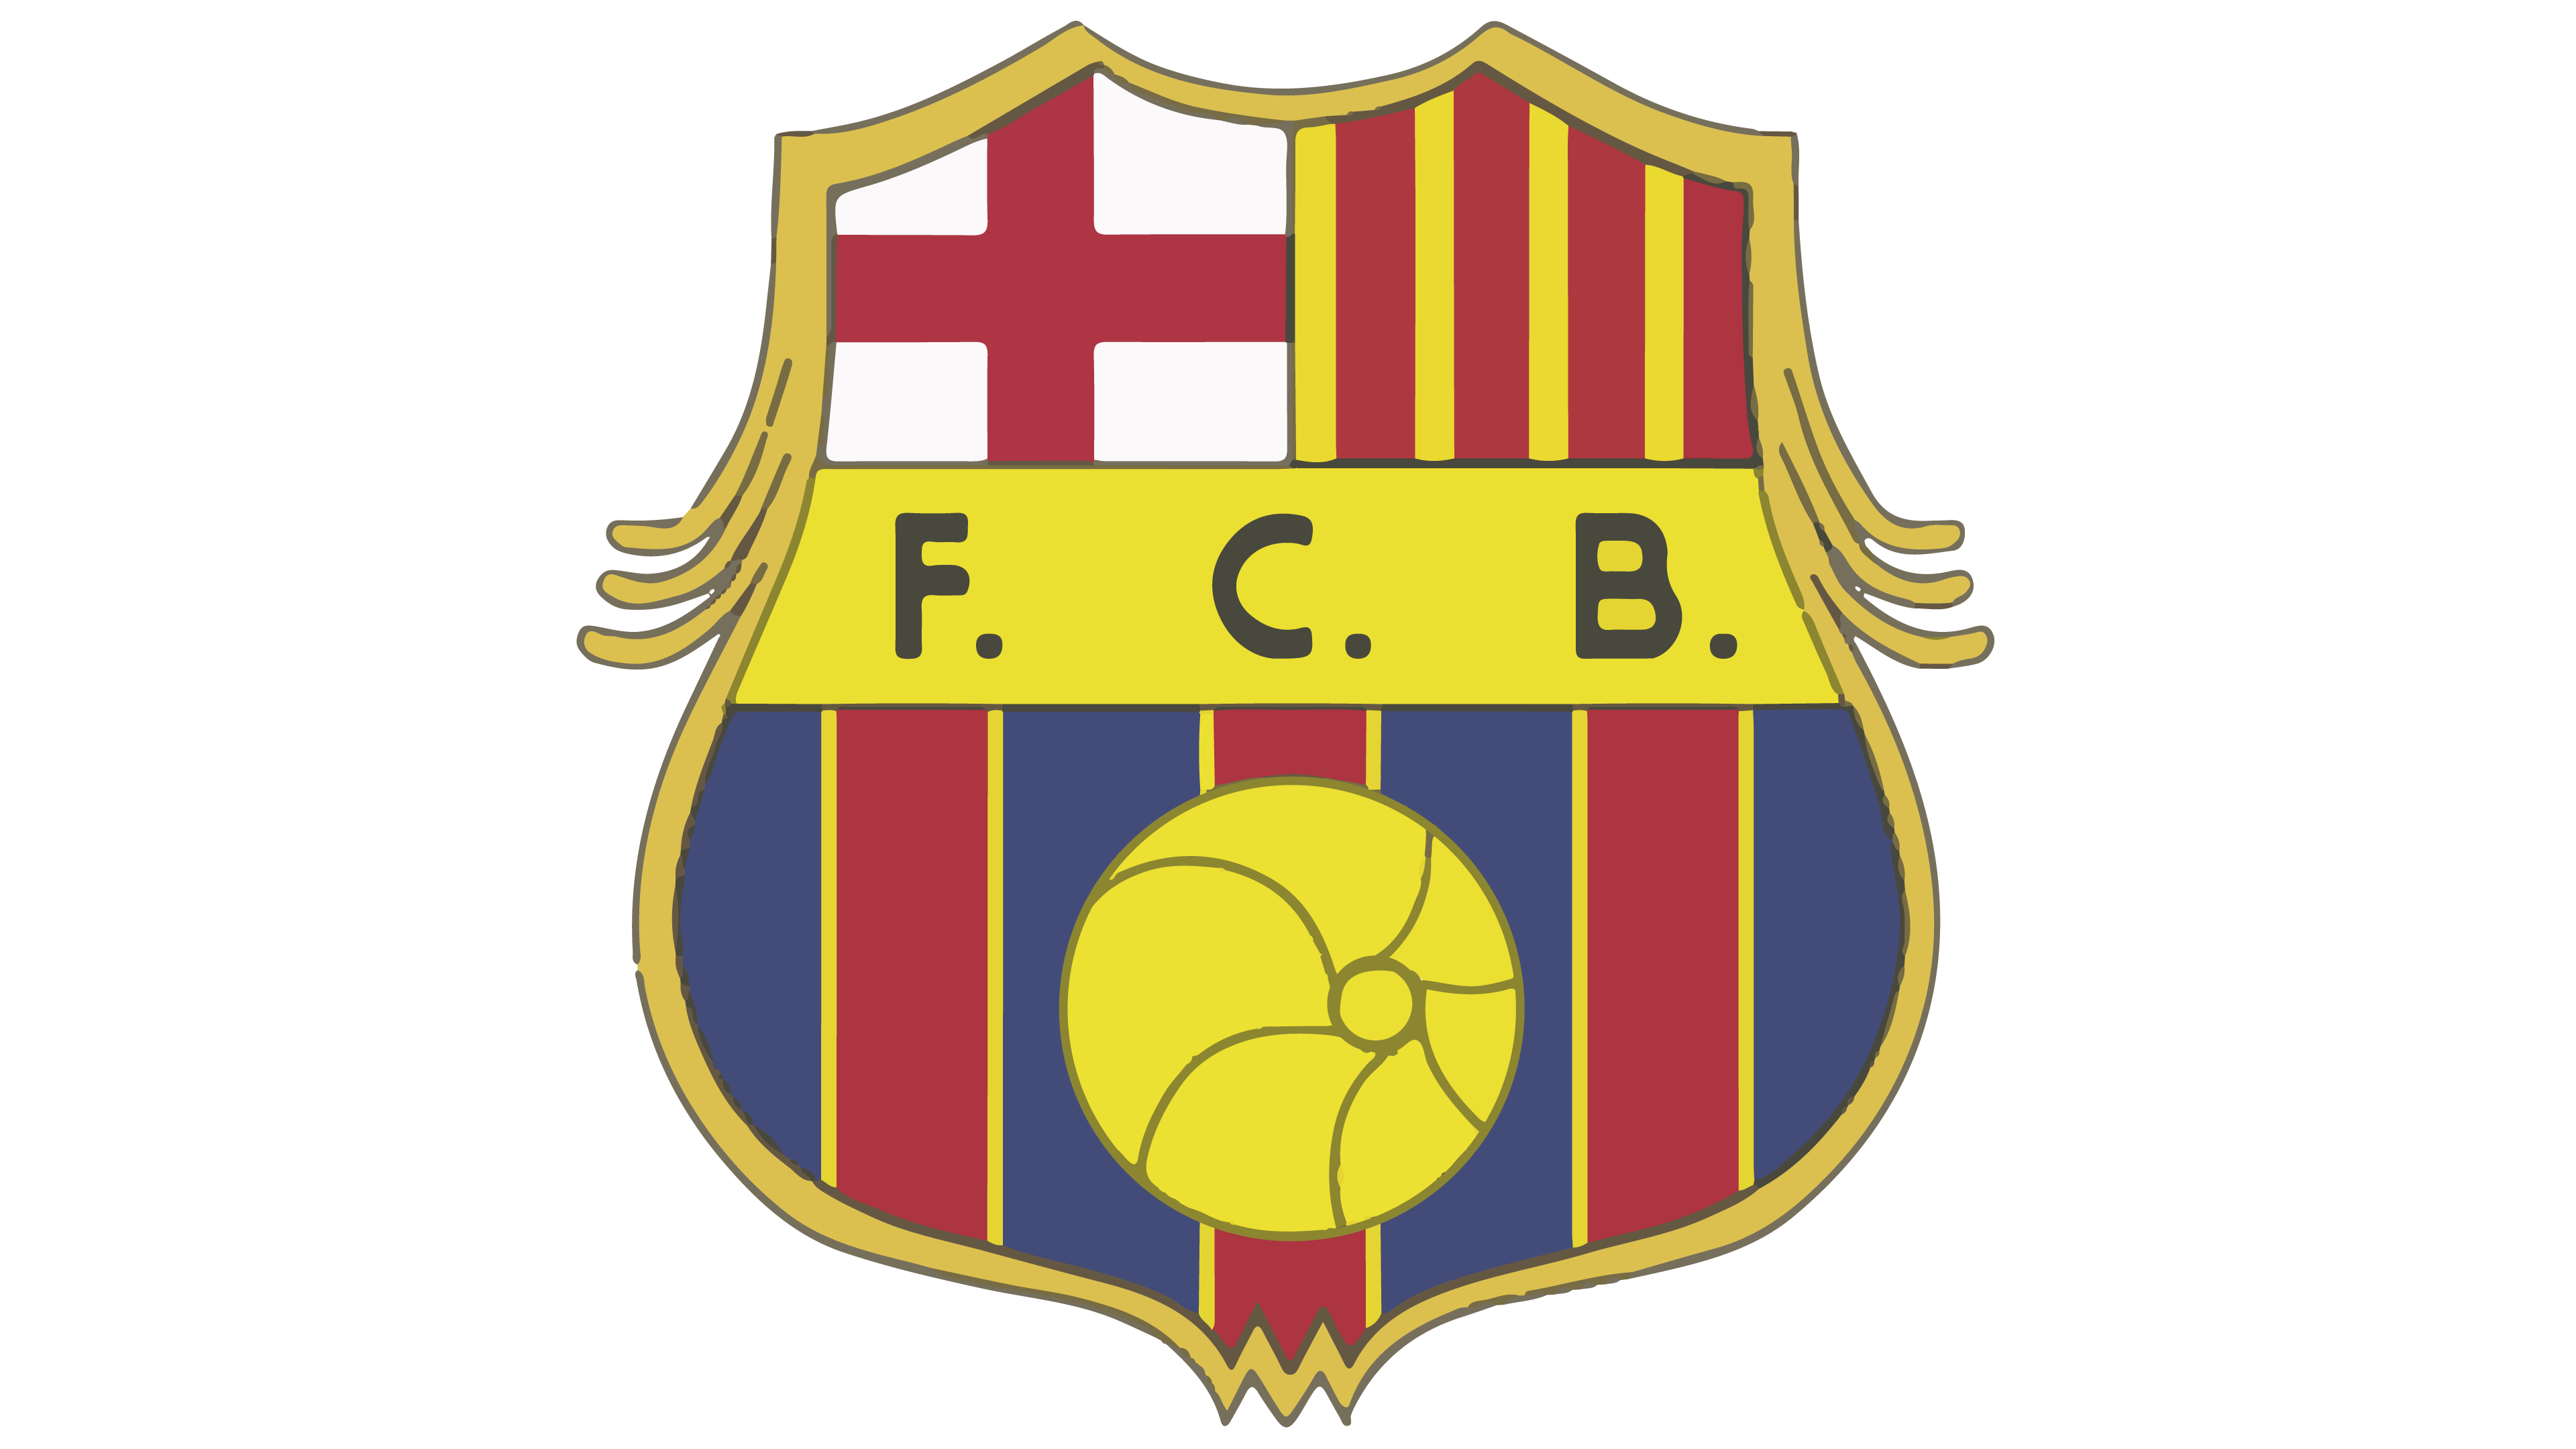 barcelona logo interesting history the team name and #12204